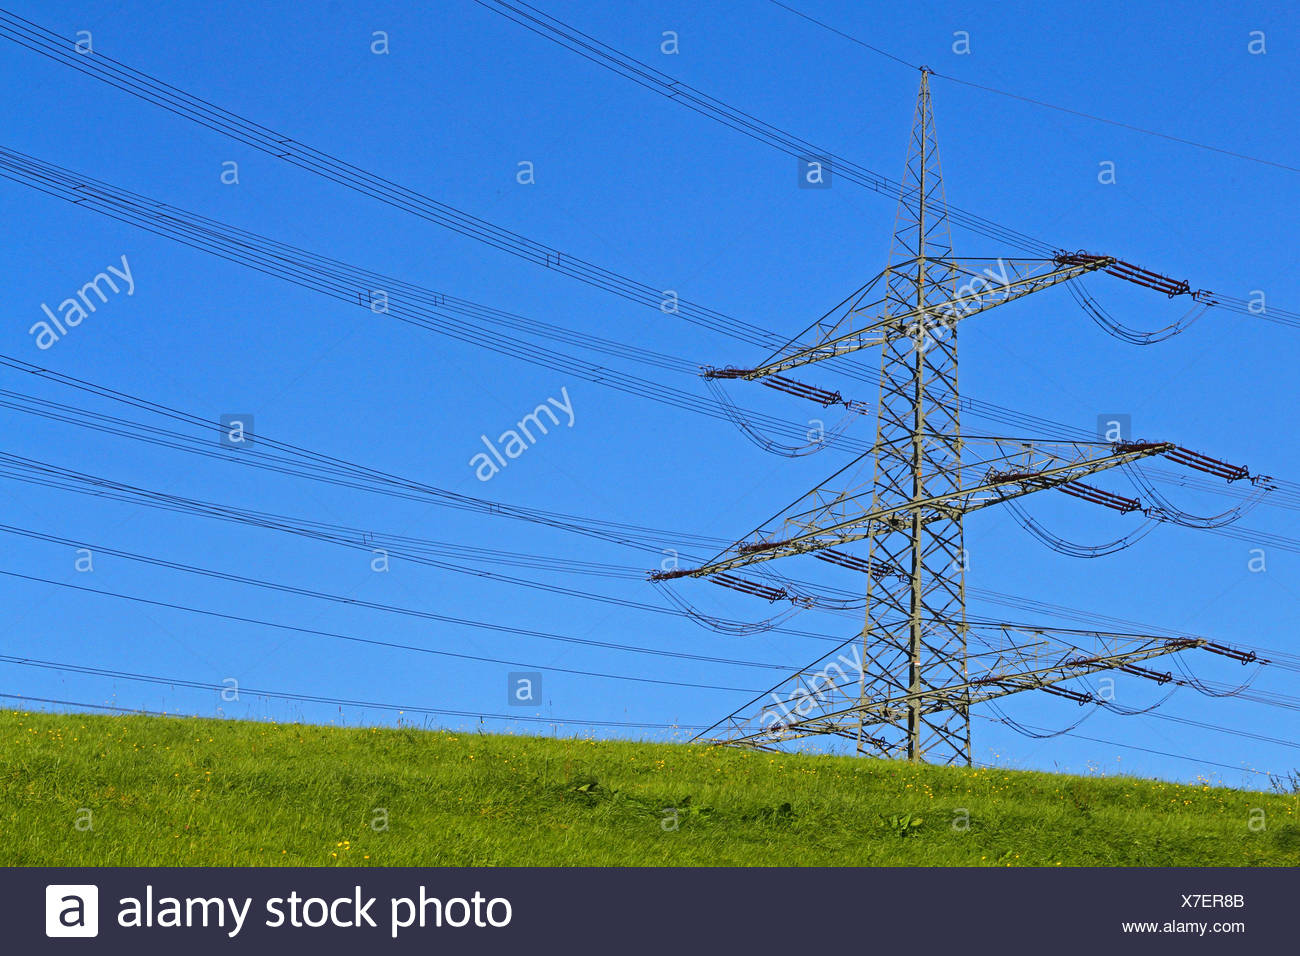 overland power lines, Germany - Stock Image